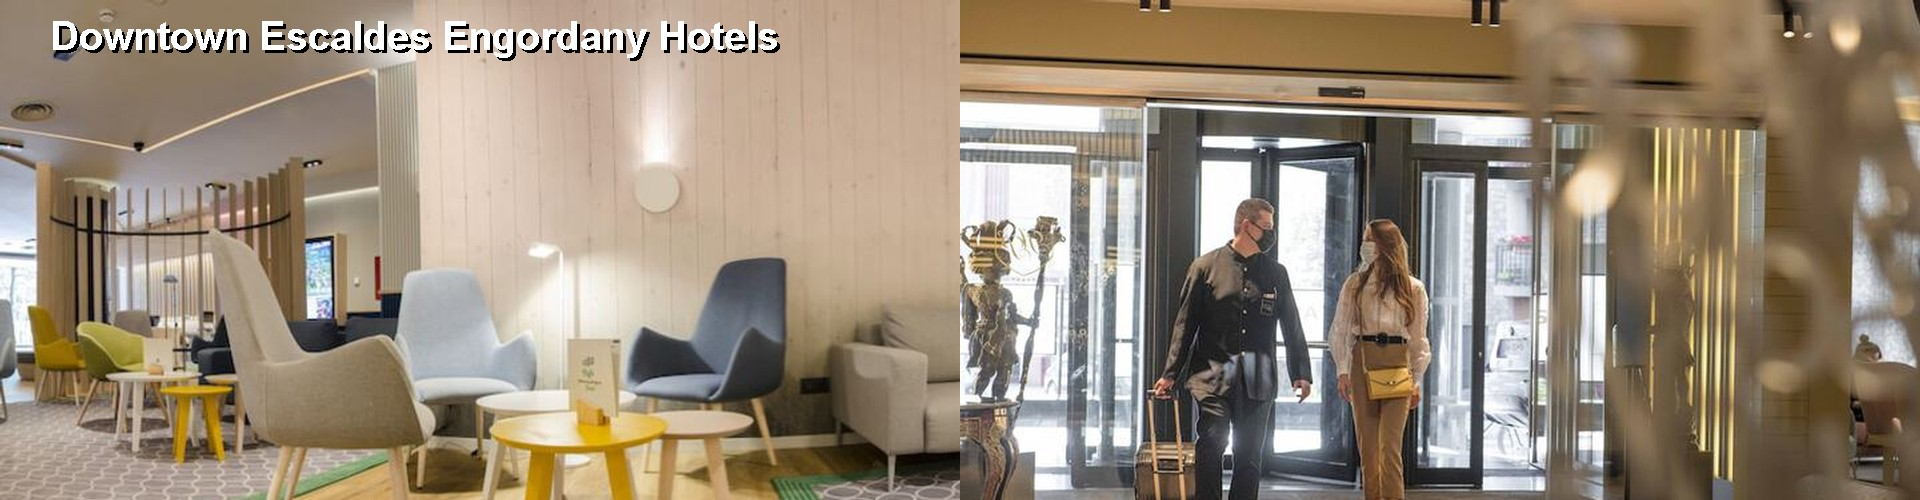 5 Best Hotels near Downtown Escaldes Engordany